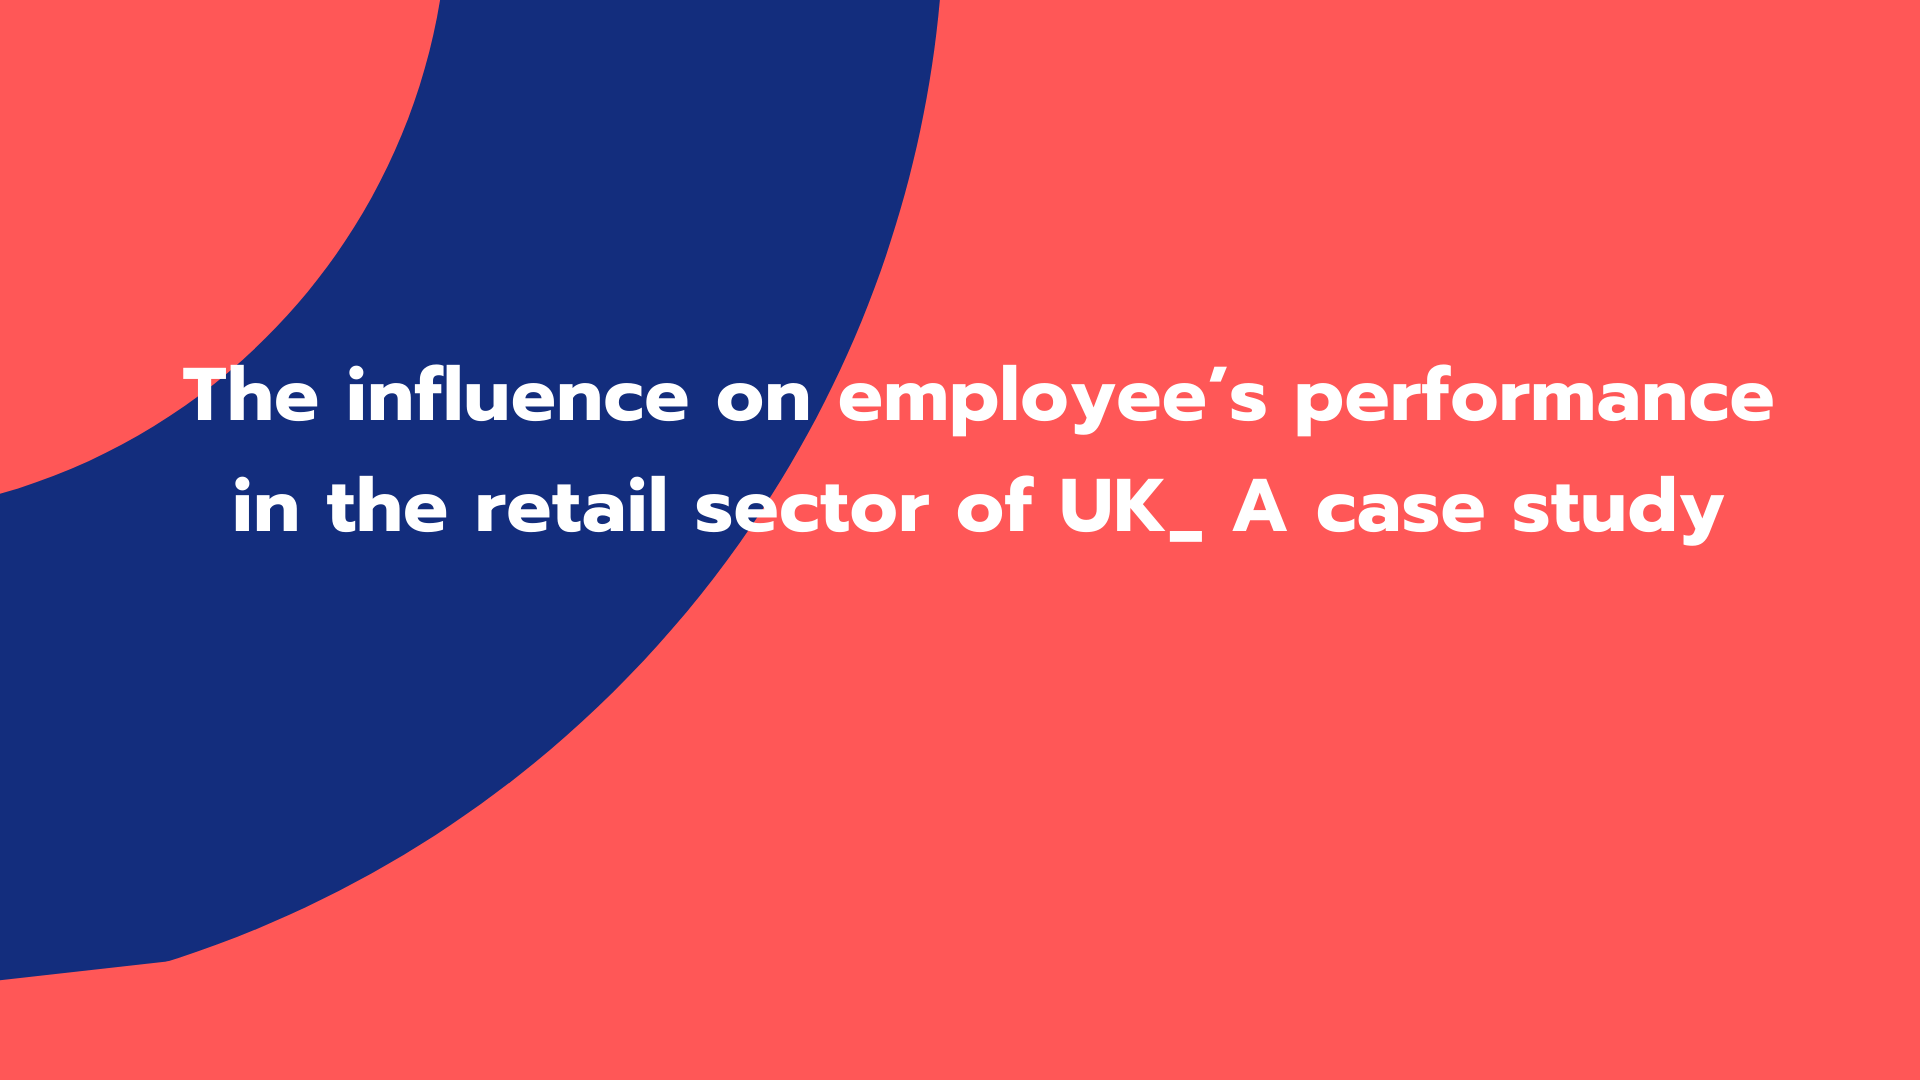 The influence on employee's performance in the retail sector of UK_ A case study